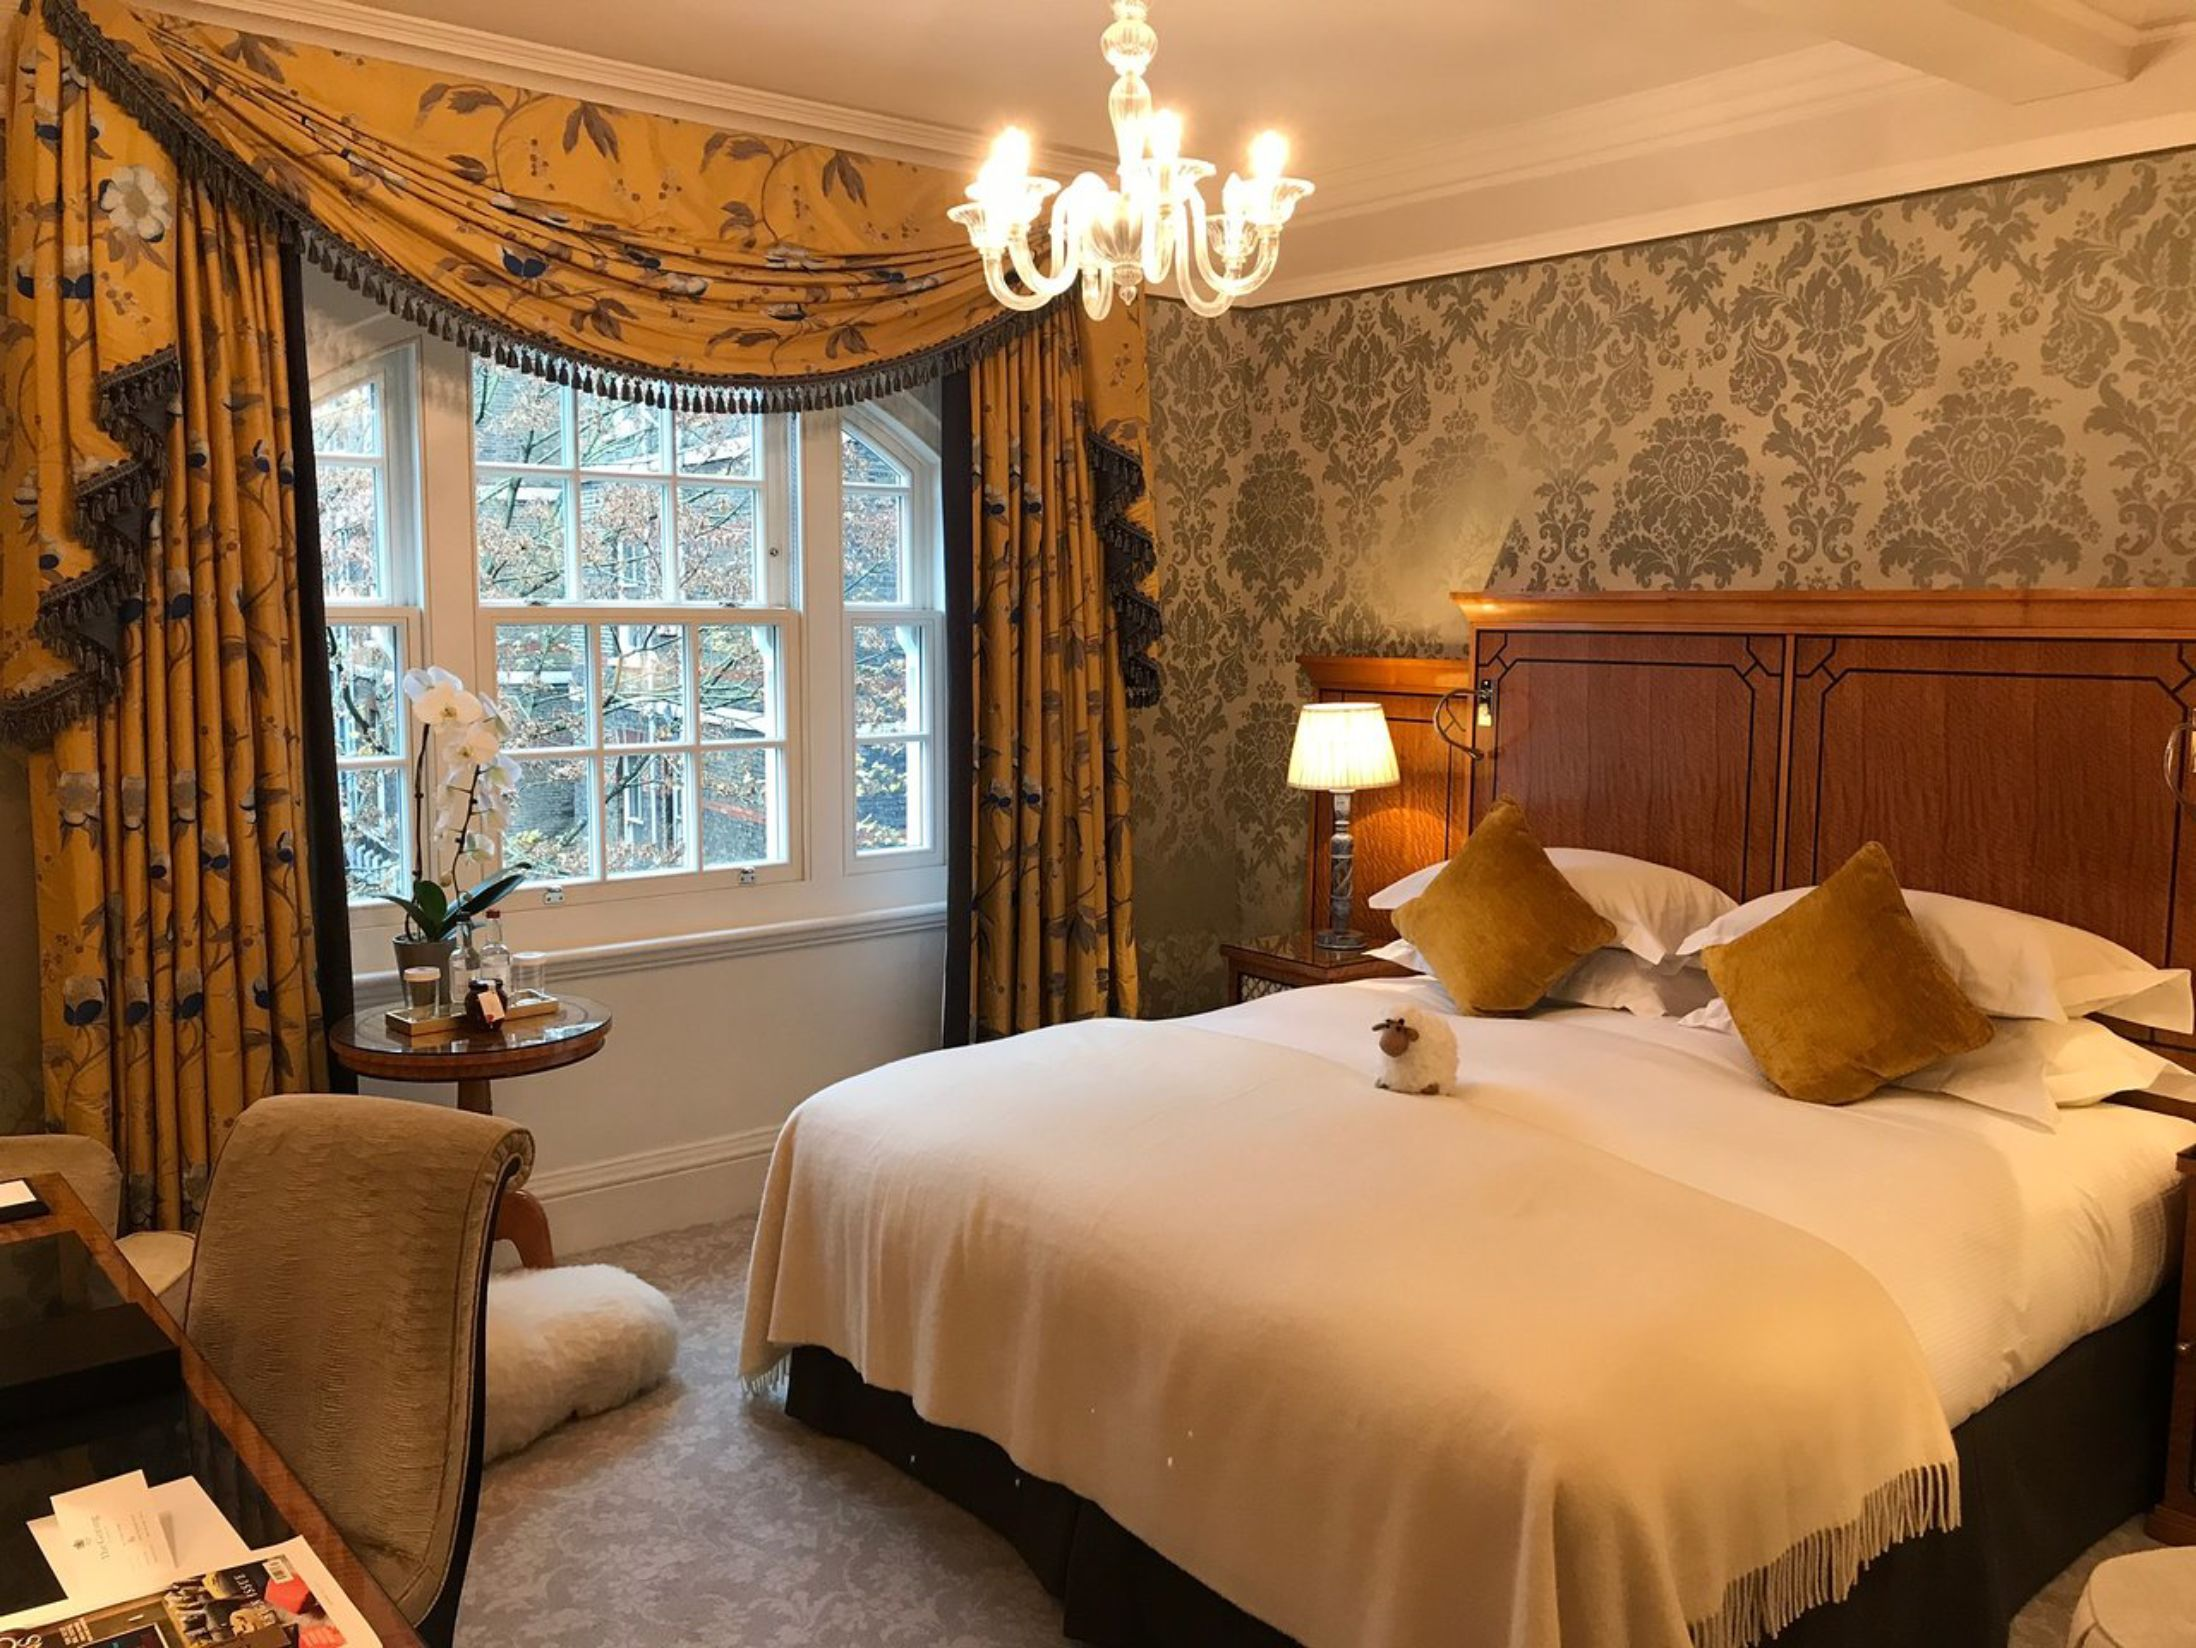 Best Hotels in Central London - The Goring Hotel